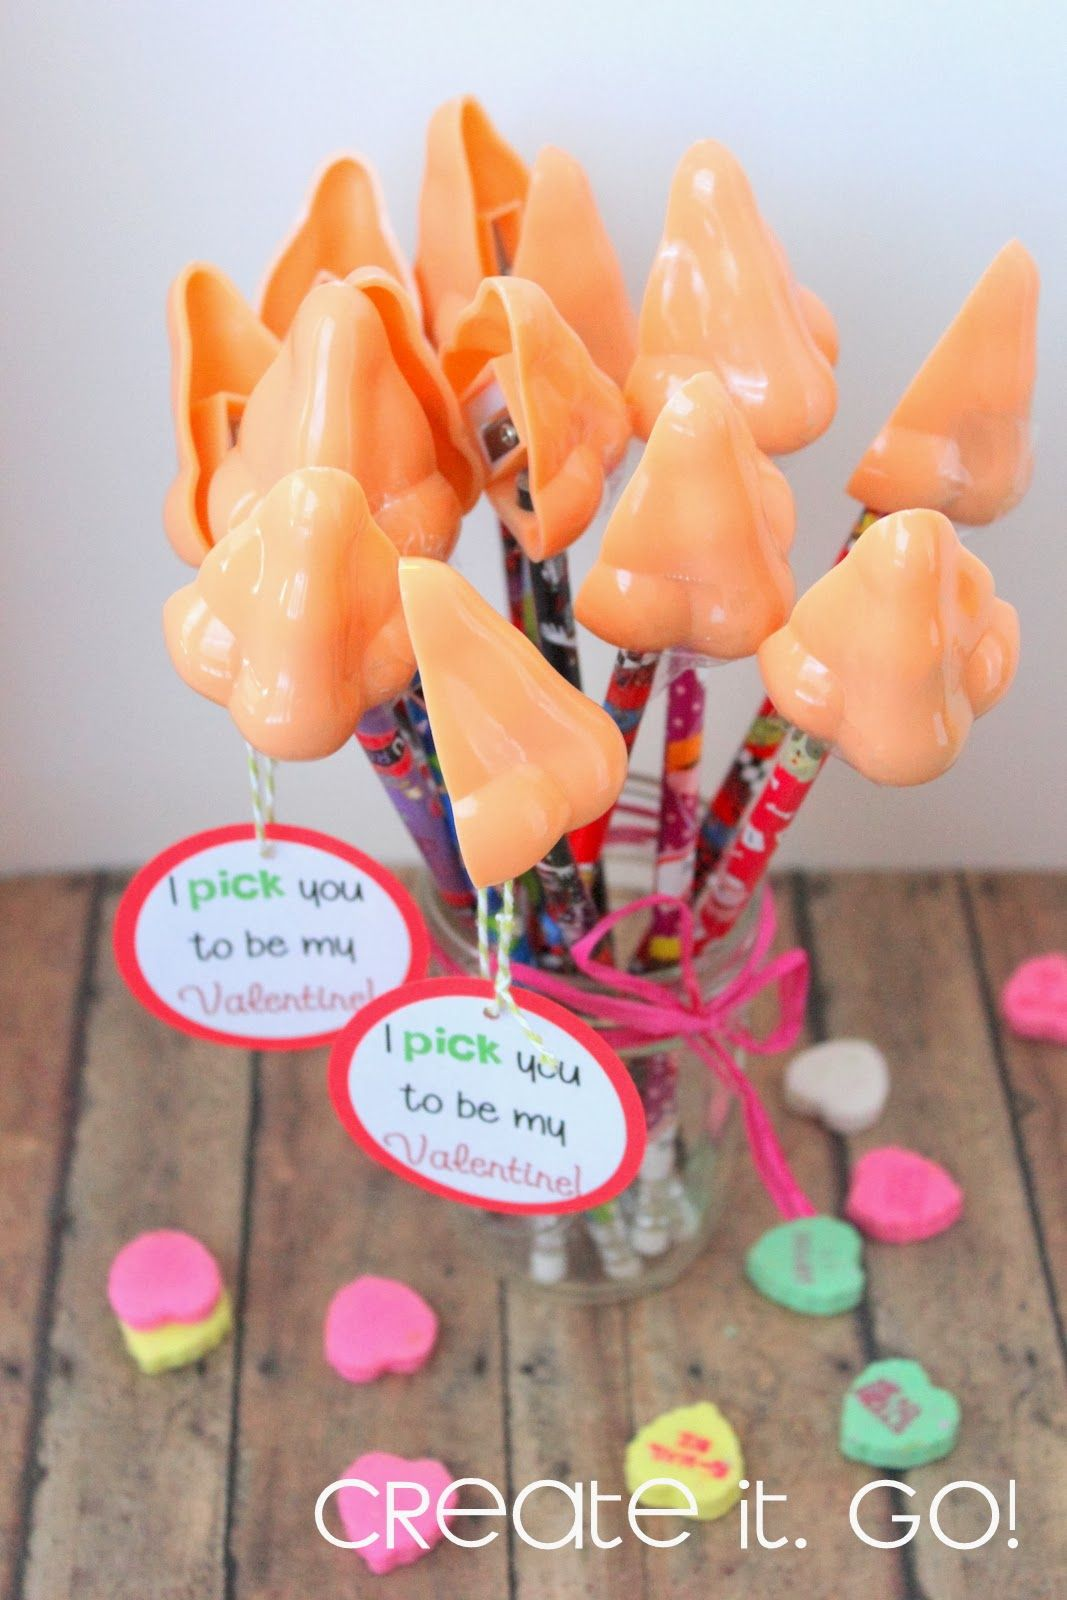 last minute creative valentine ideas for kids nose pencil sharpeners i pick you to - Boy Valentine Ideas